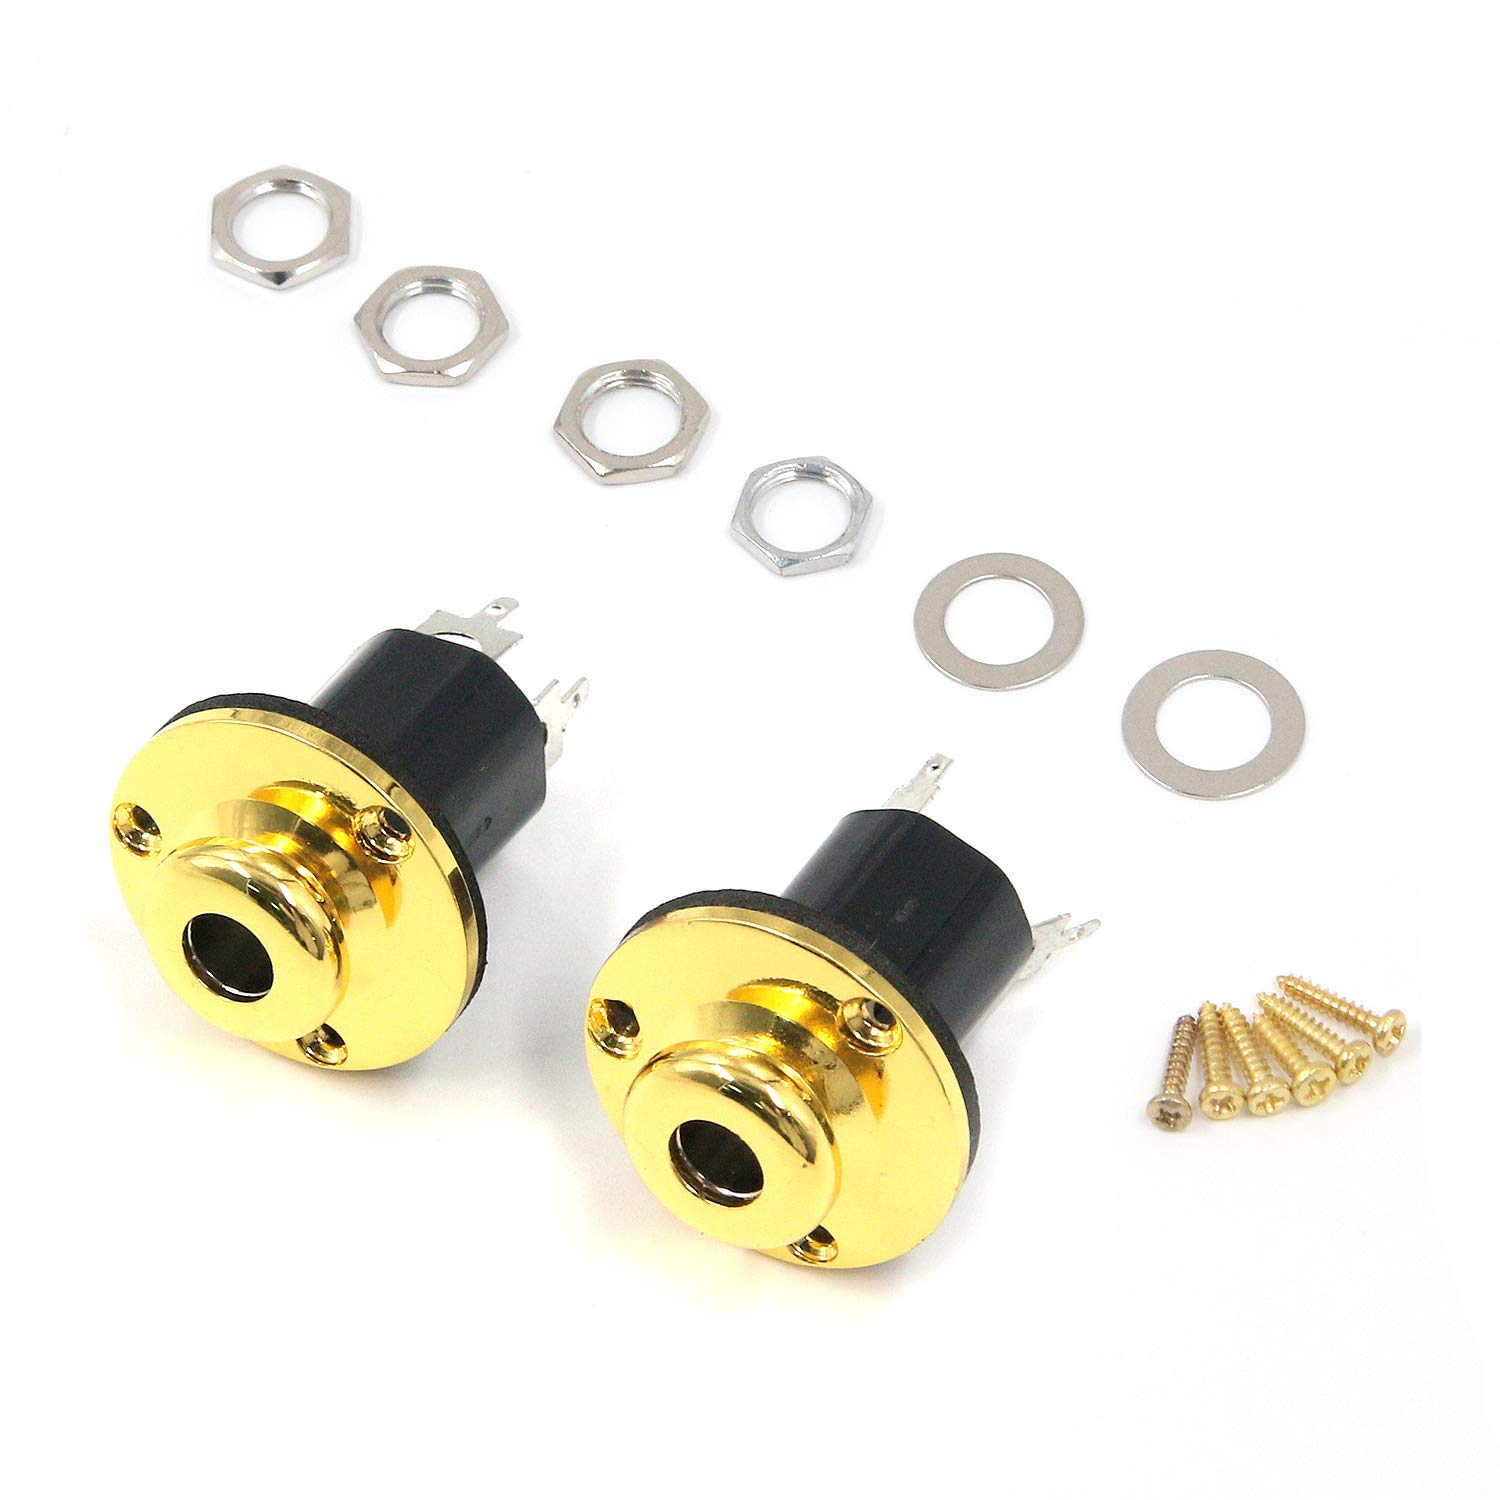 Gold FarBoat 2Pcs 6.35mm//1//4inch Acoustic Guitar Endpin Output Jacks Plugs Pickup Sockets with Screws Metal Replacement Accessories Part for Classic Guitars Folk Guitars